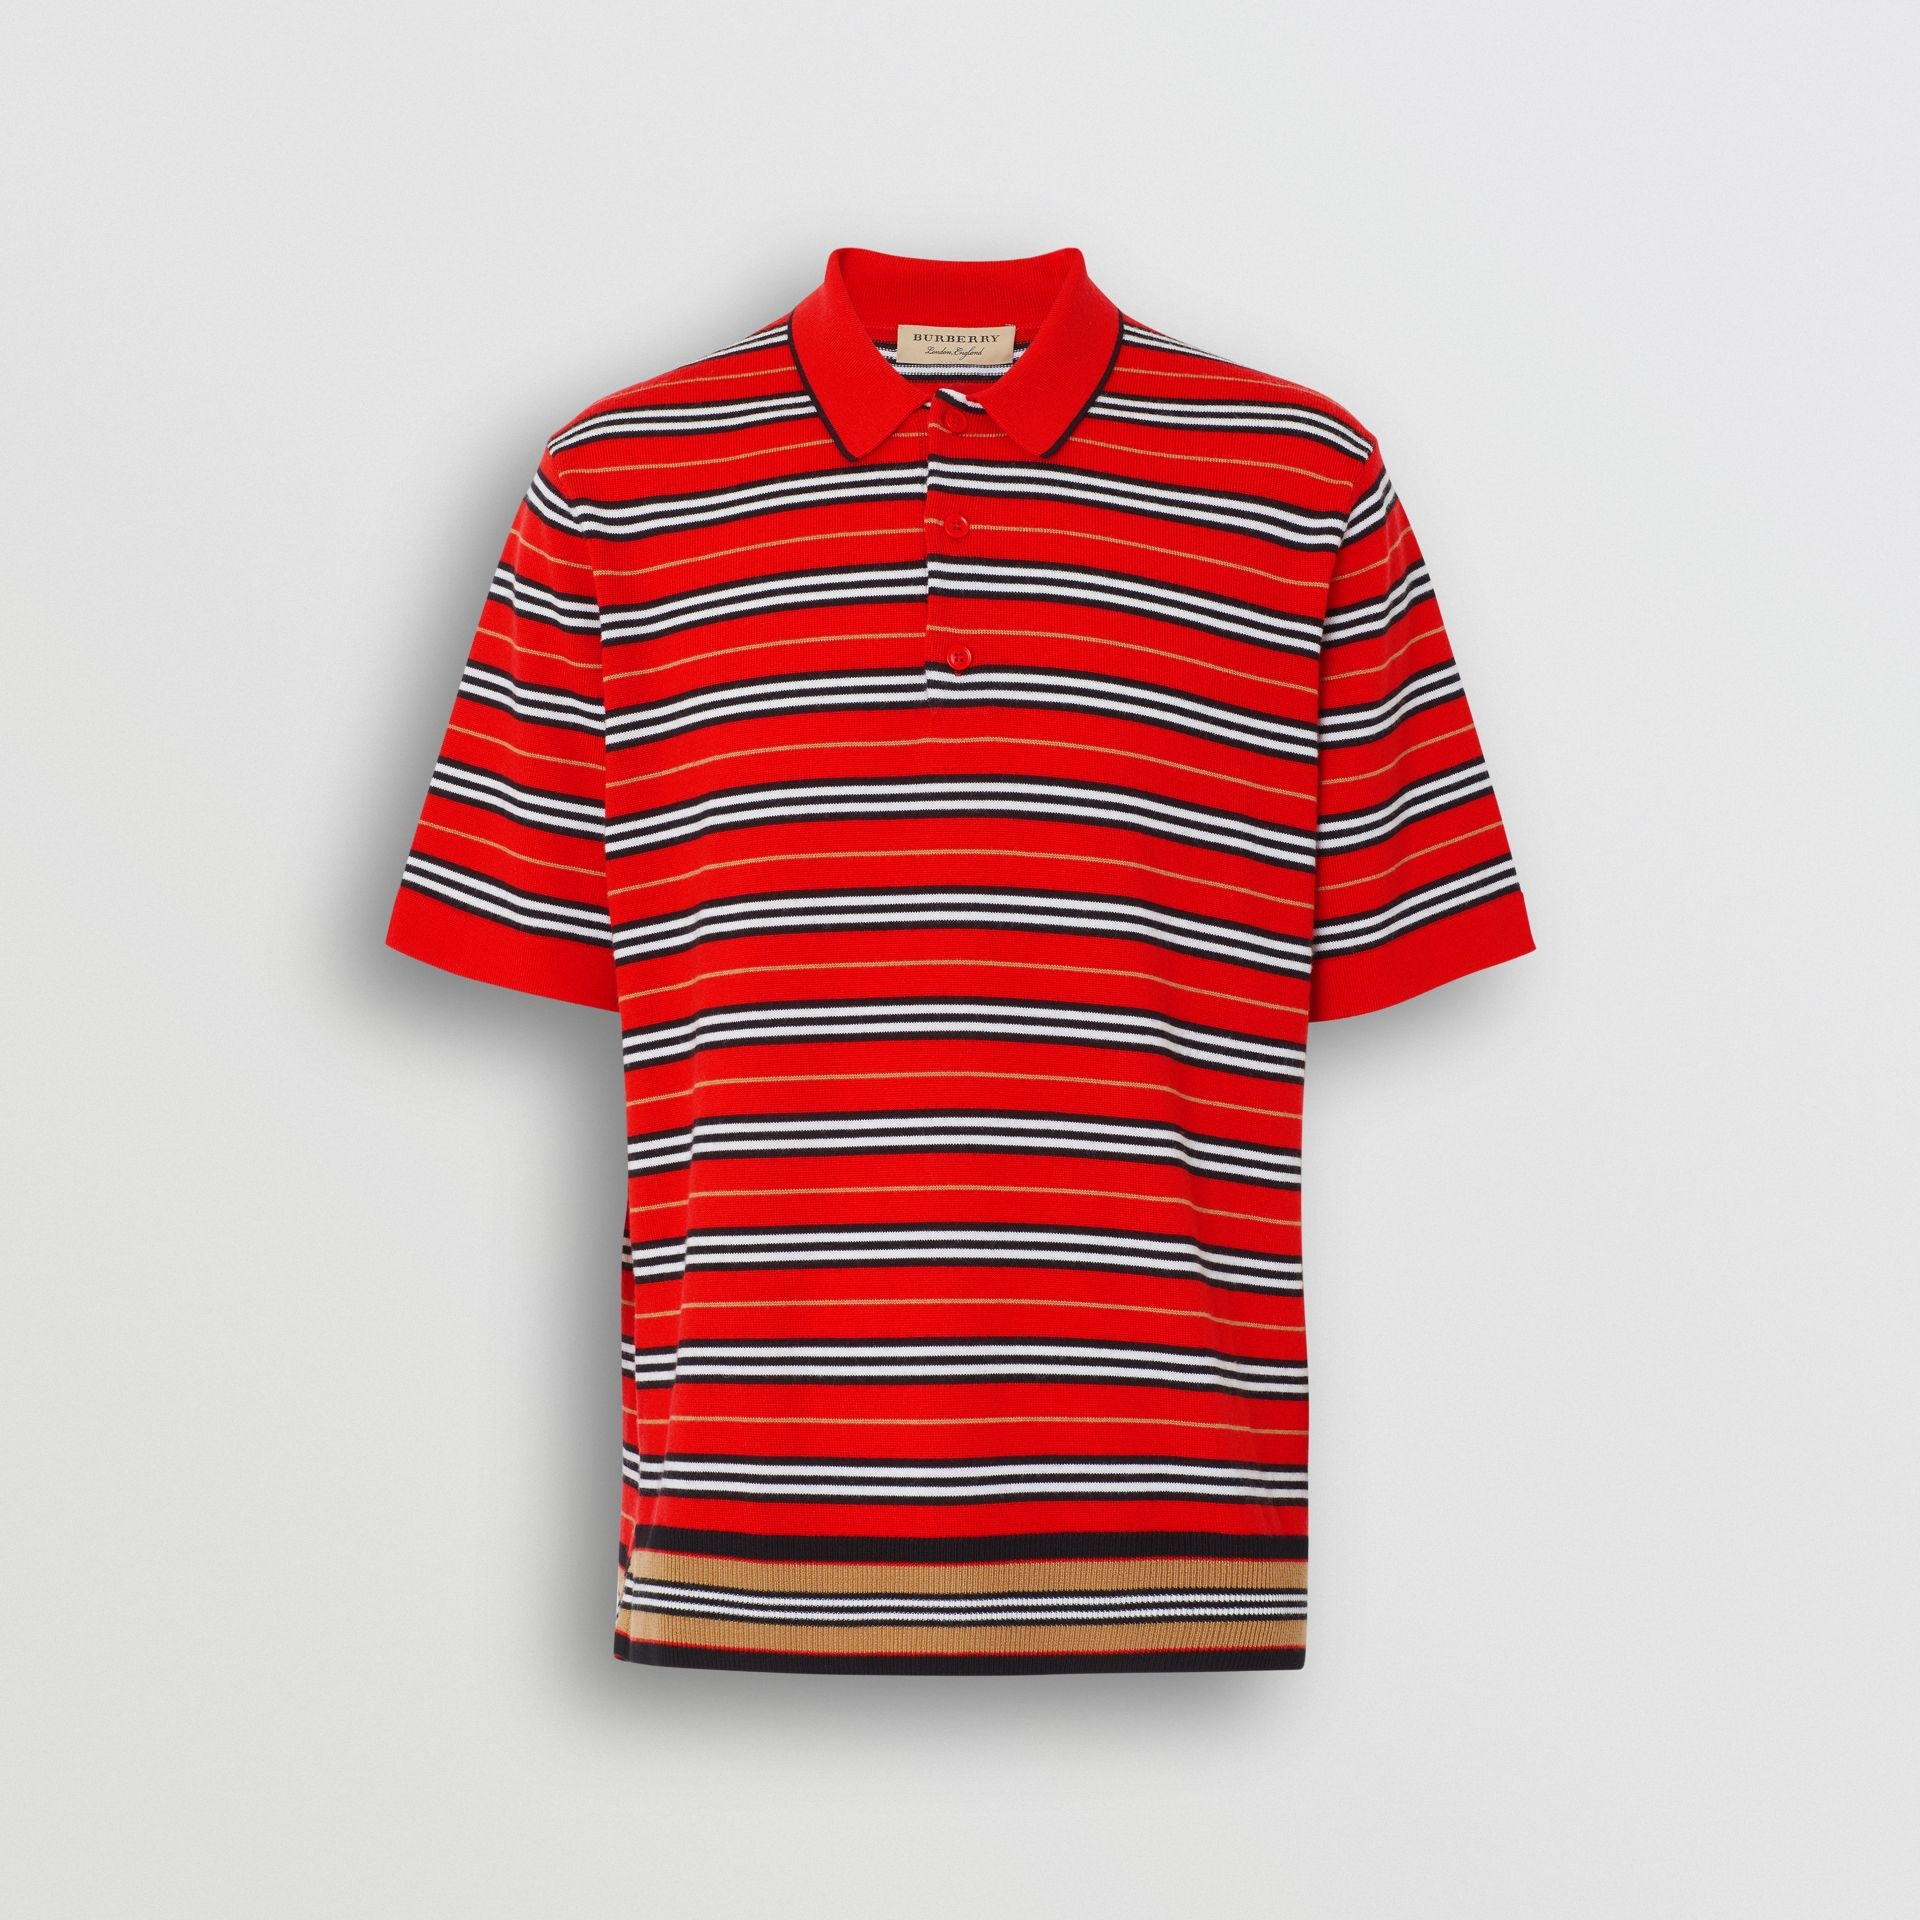 Contrast Stripe Merino Wool Polo Shirt in Bright Red - Men | Burberry - gallery image 2